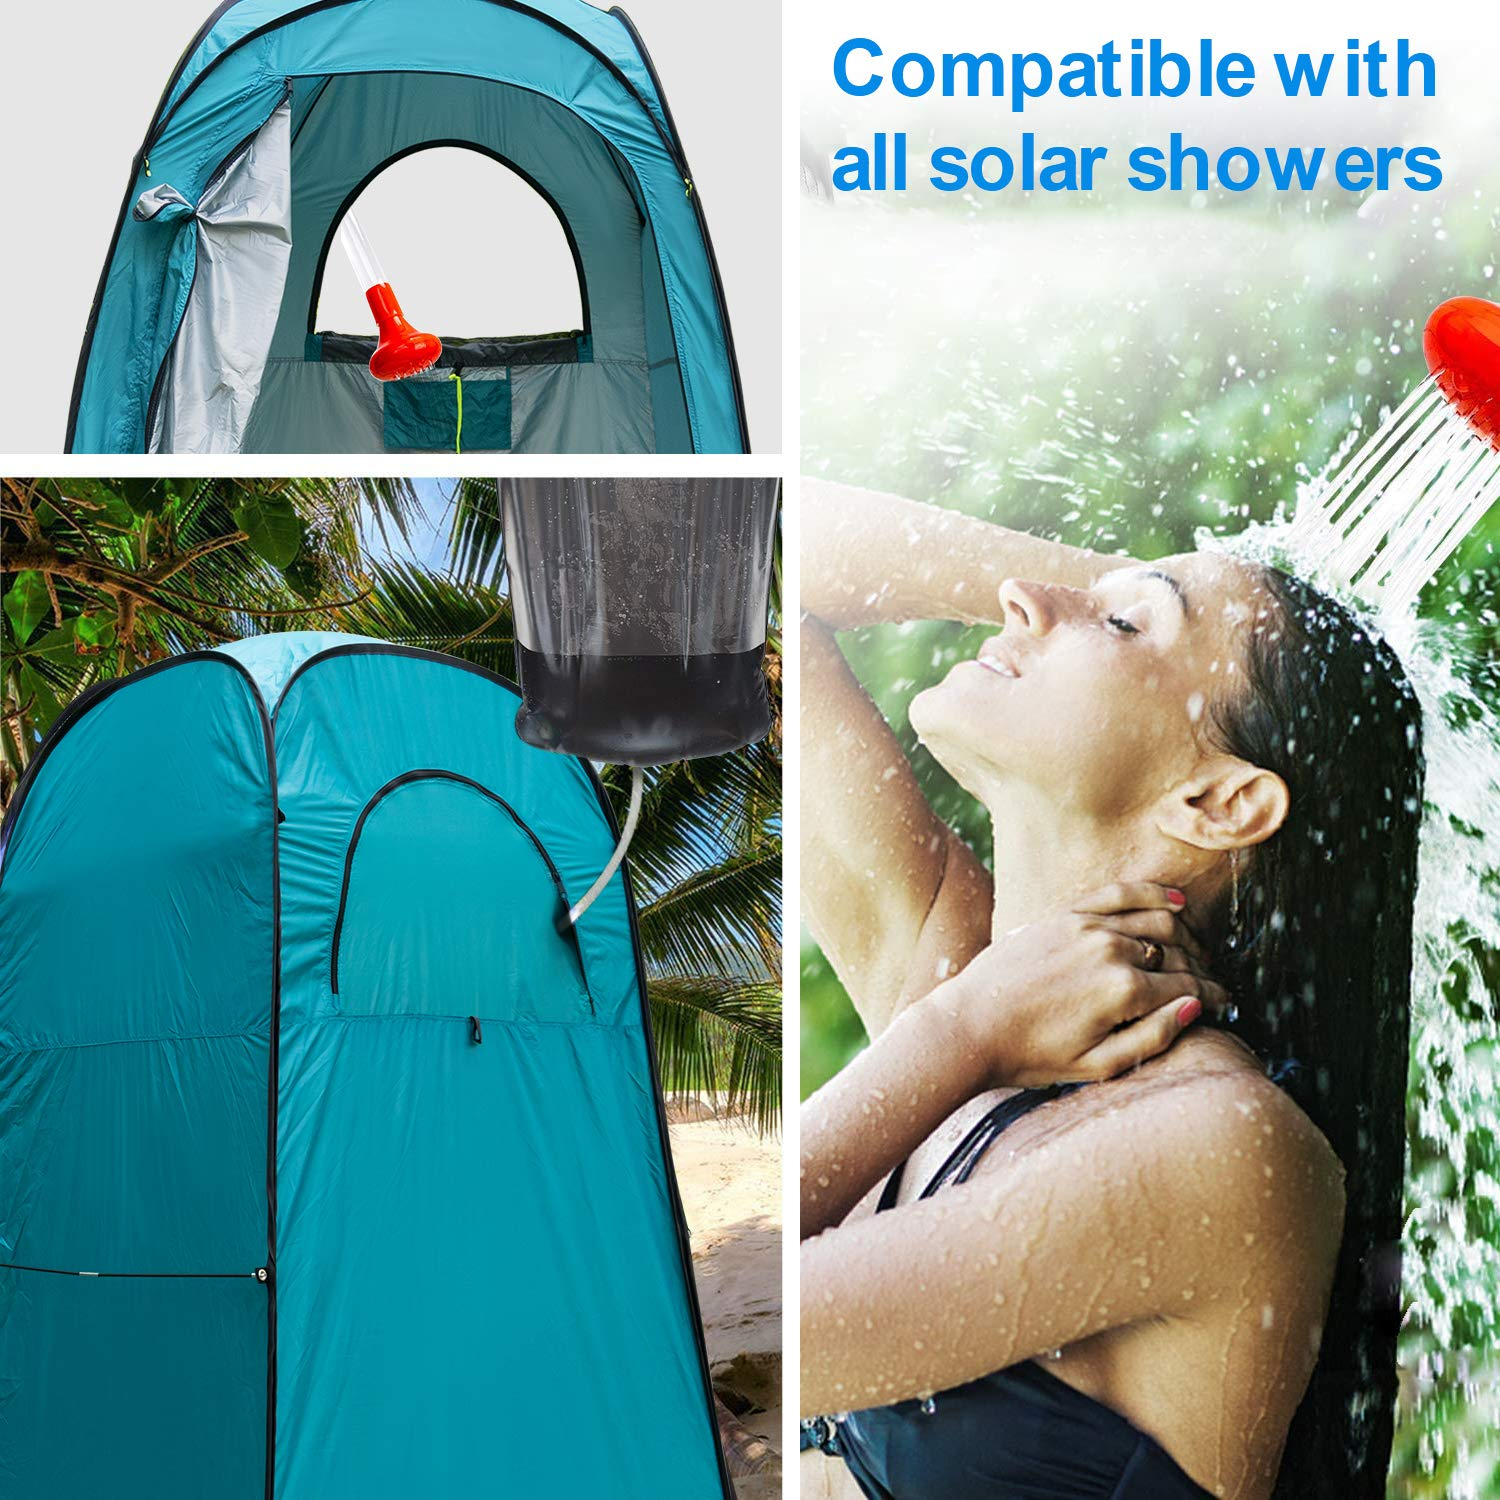 Yuanj Camping Shower Tent, Pop Up Toilet Tent Waterproof Changing Tent, Outdoor Private Mobile Toilet Tent for Camping & Beach, with Carrying Bag, 210 * 120 * 120 cm